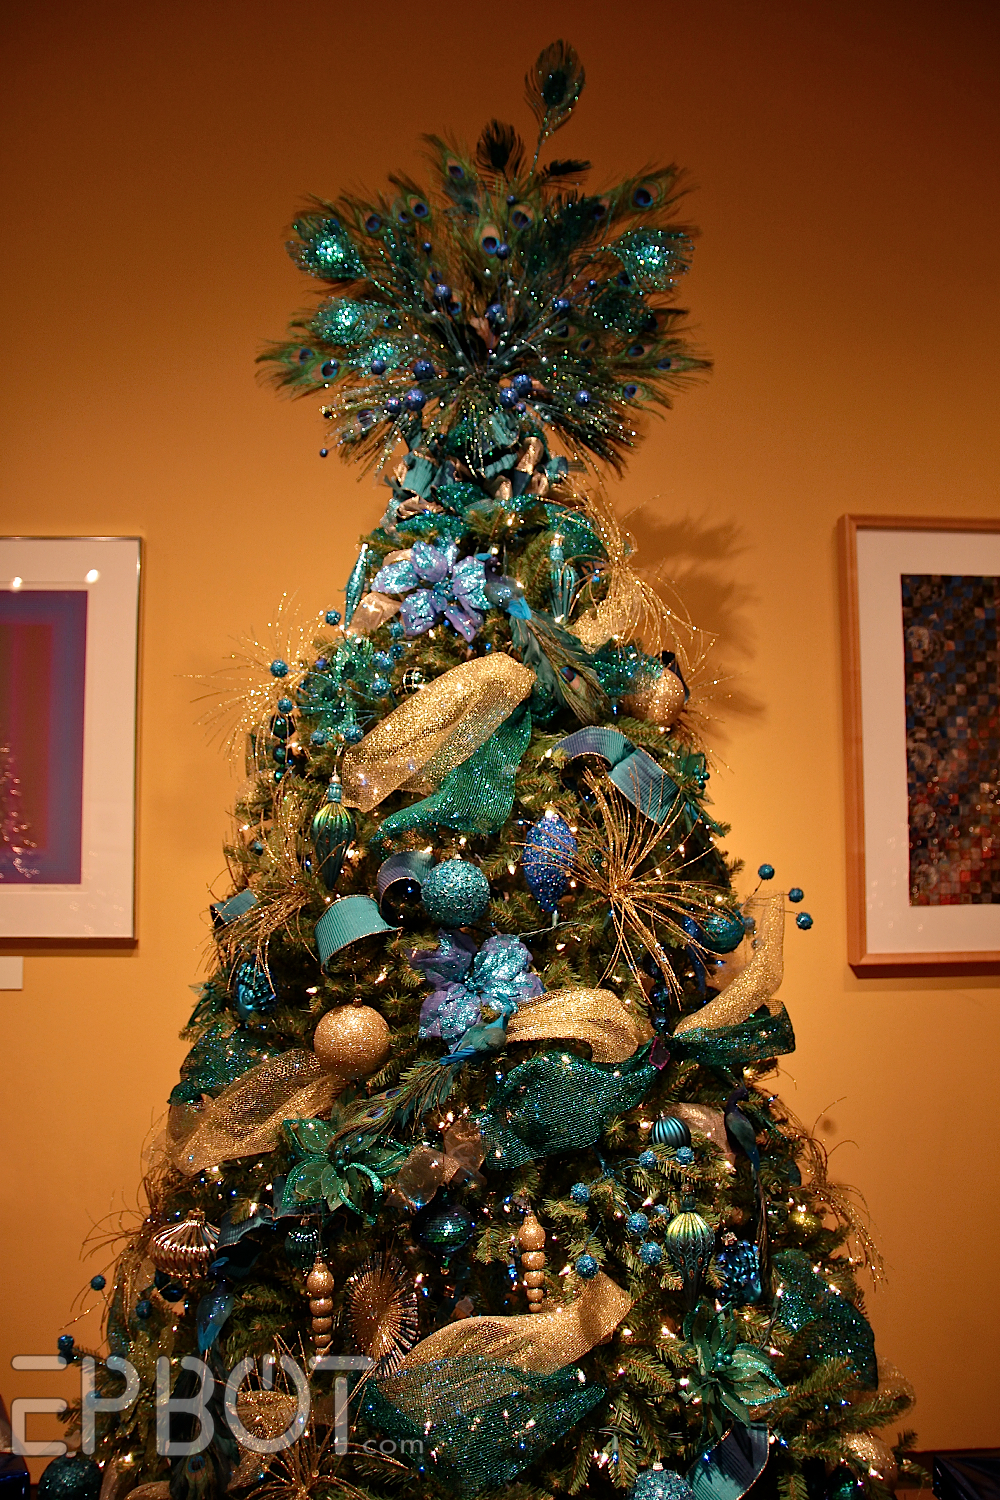 this one had a great earthy theme with mushrooms branches leaves and iridescent bubble ornaments